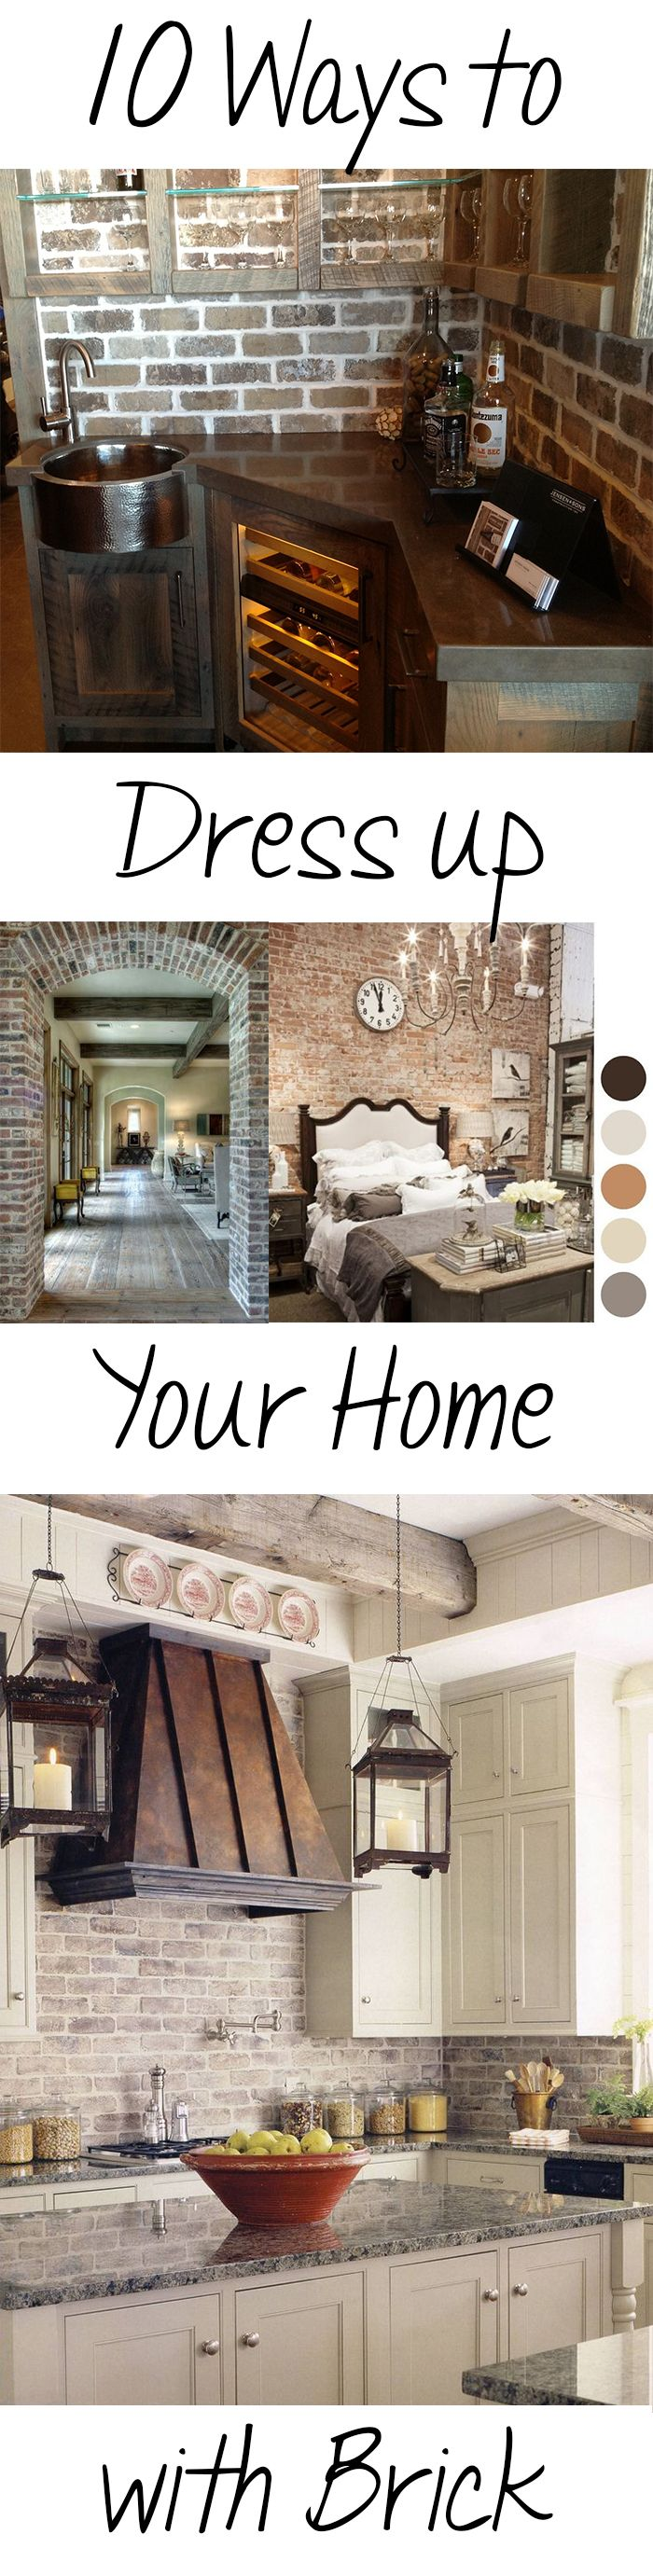 BRICK……. WARM AND WELCOMING, TRADITIONAL AND TIMELESS To me brick is one of the timeless elements of décor.  It never goes out of style and I, for one, NEVER get tired of it. Below are a cou...